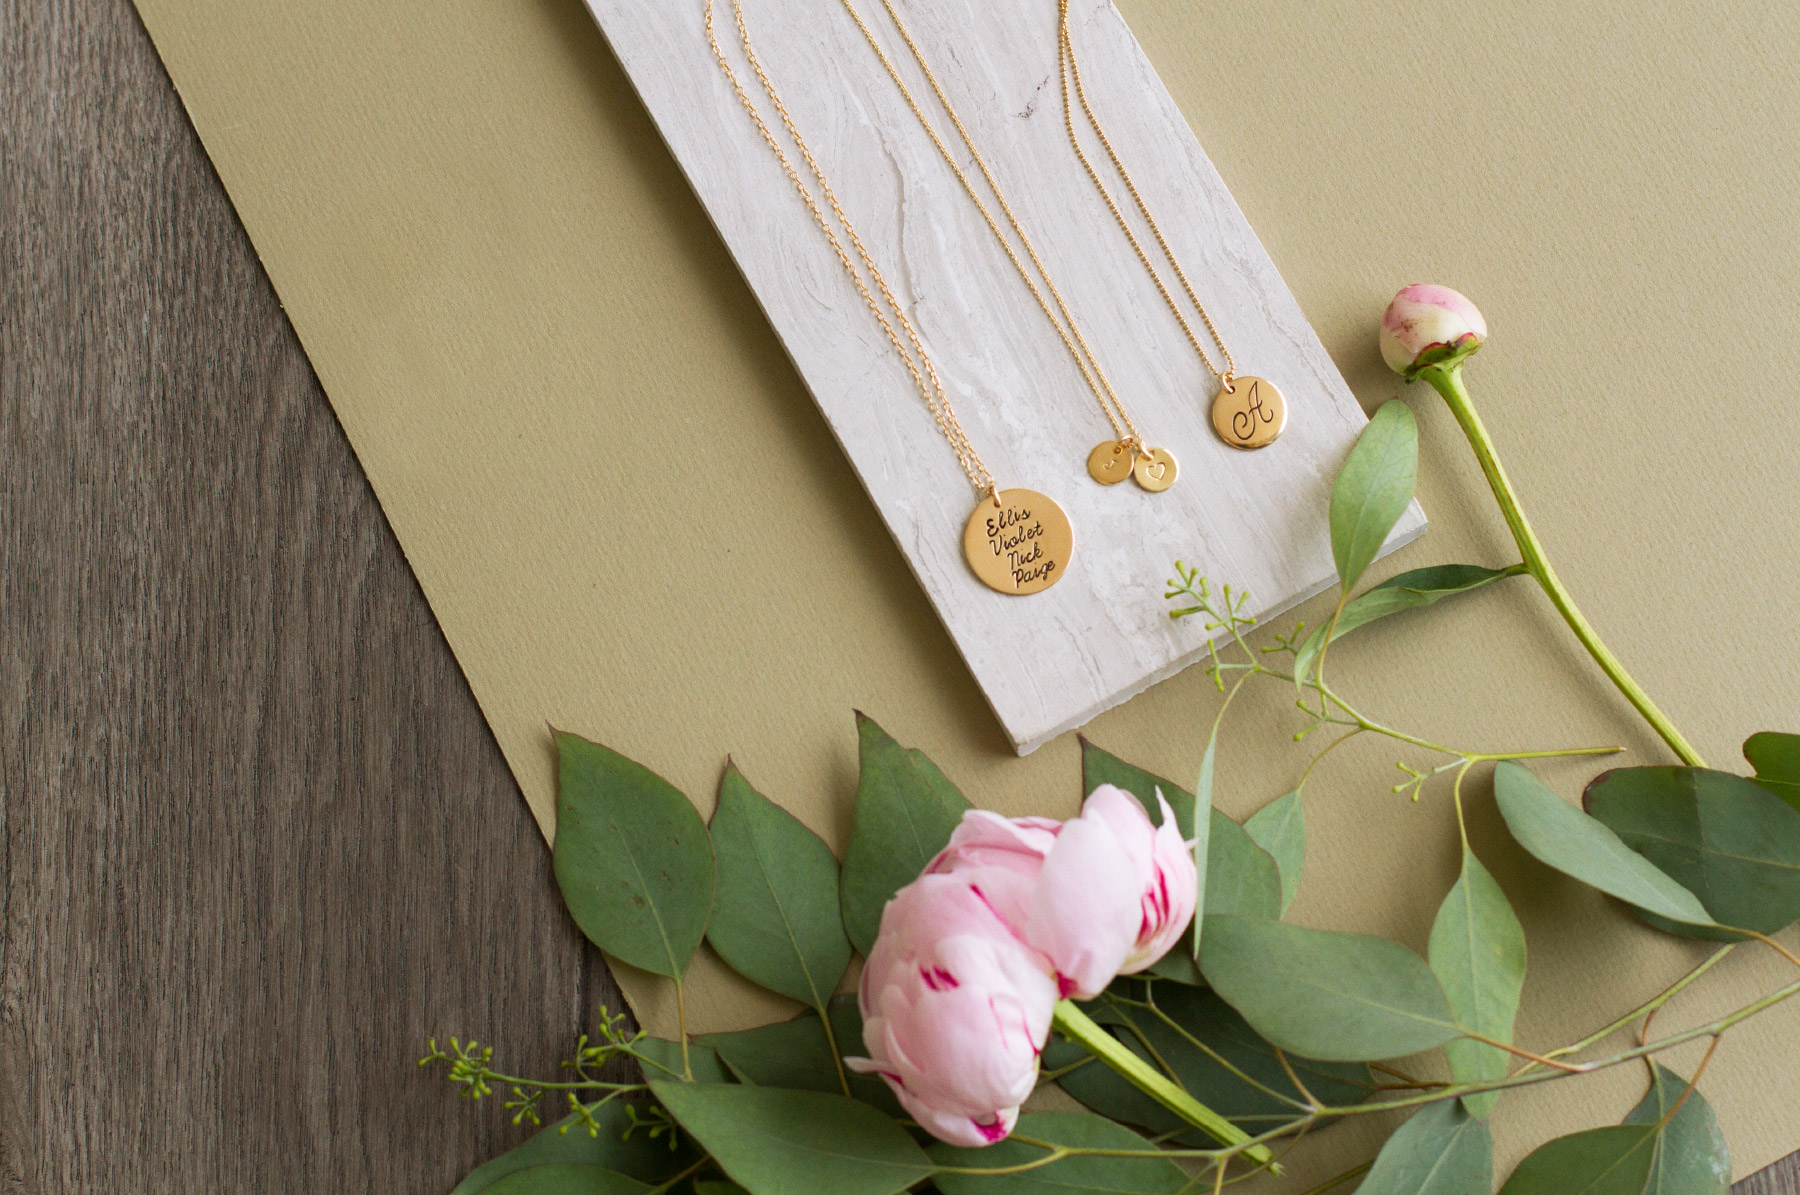 3 necklace charm styles for moms